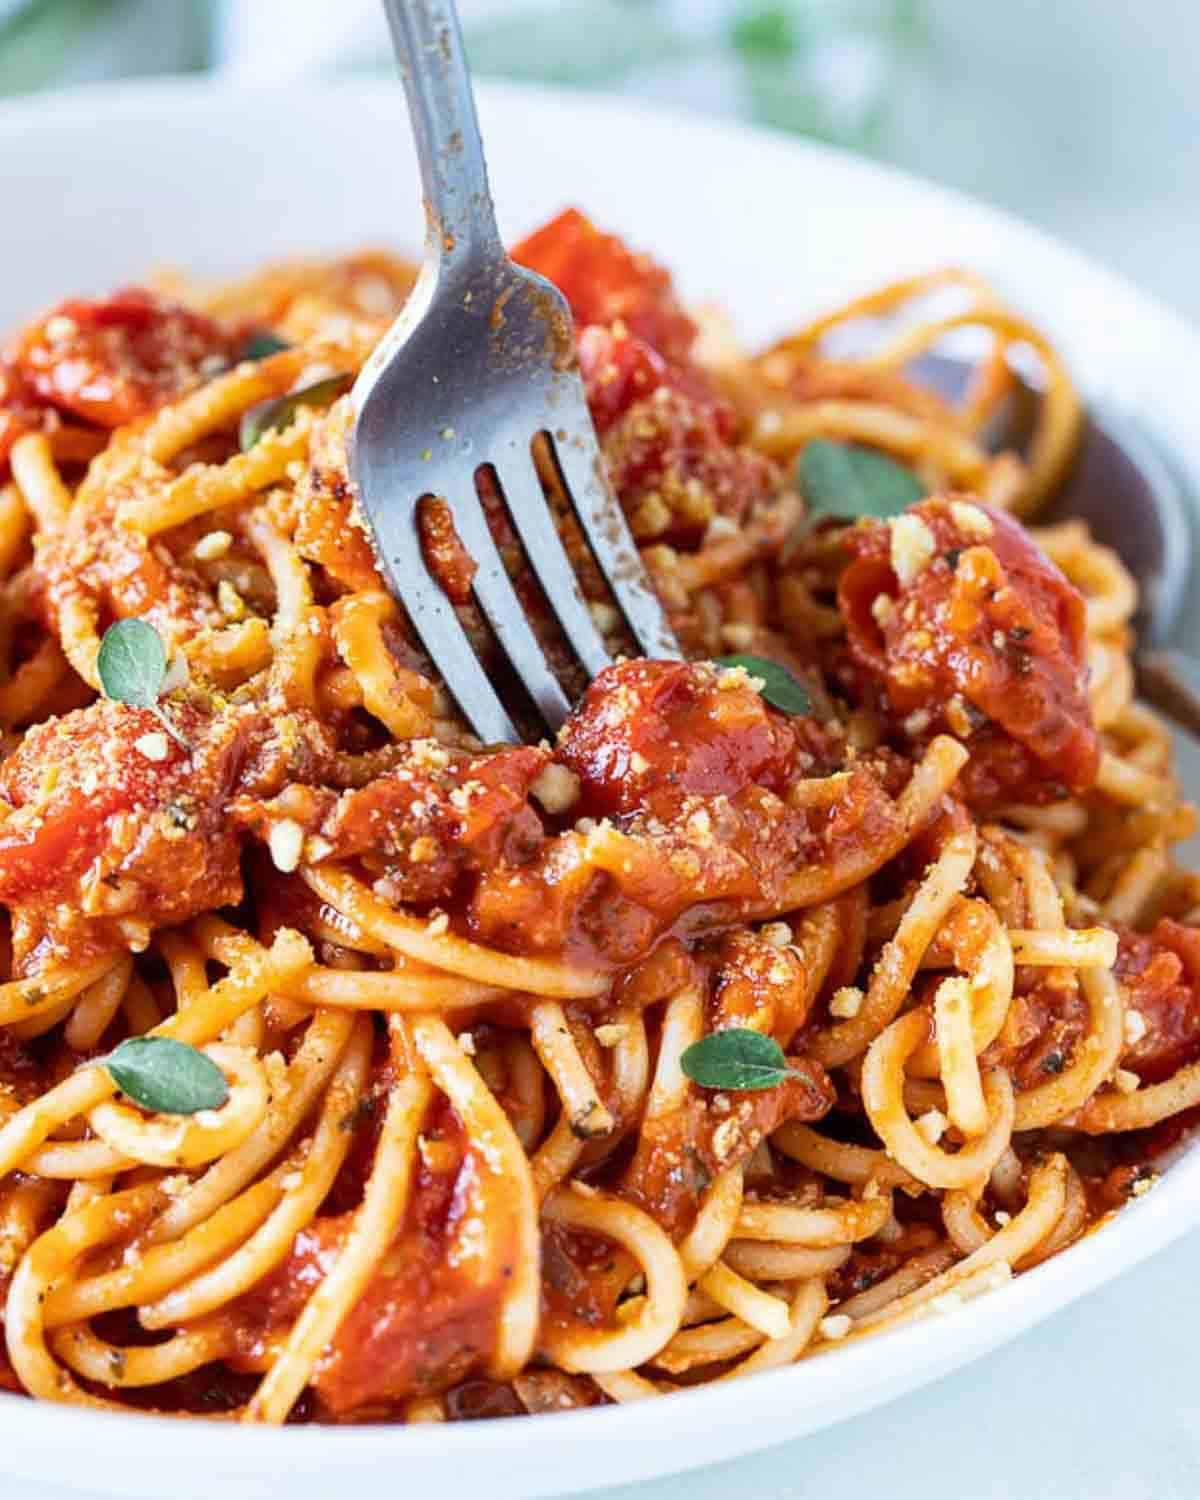 A plate of tomato sauce spaghetti with a fork.